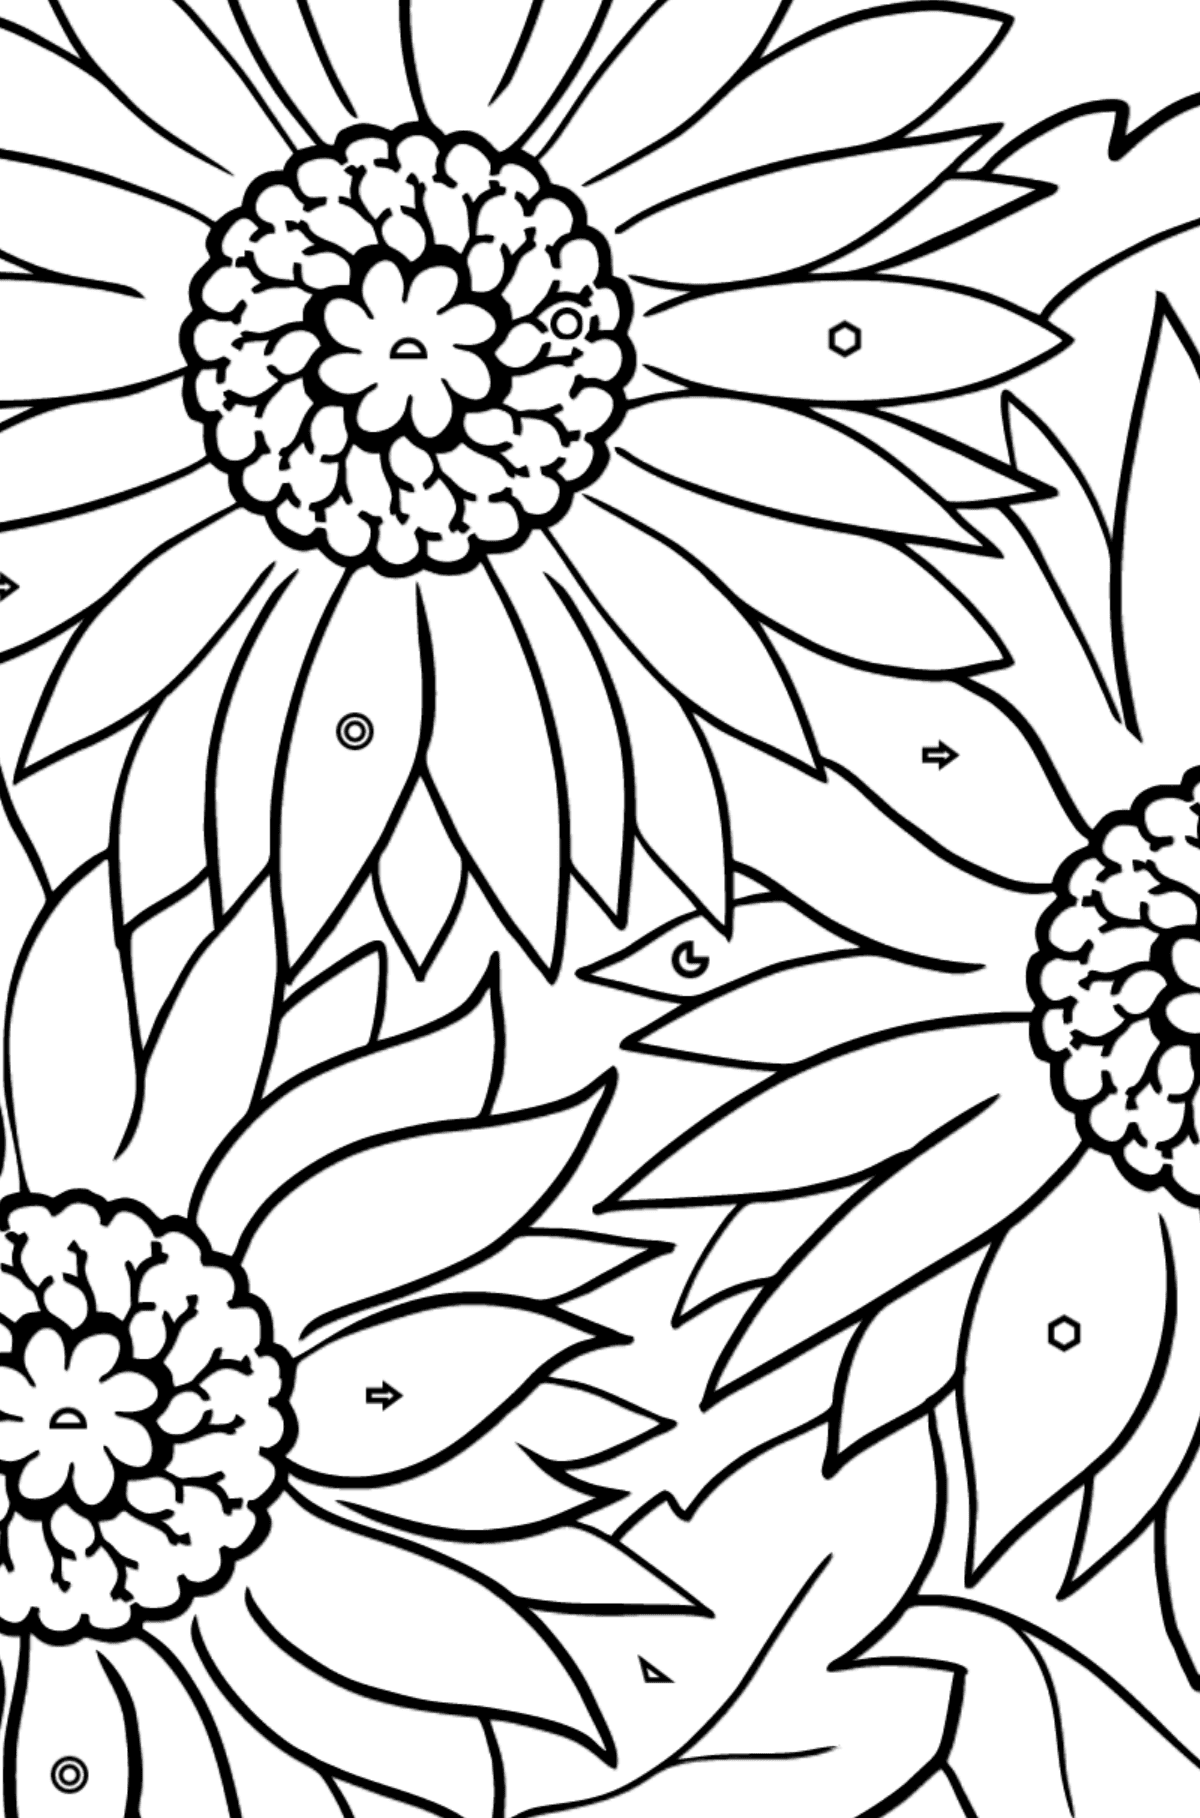 Coloring Page - Yellow Gerbera - Coloring by Geometric Shapes for Kids